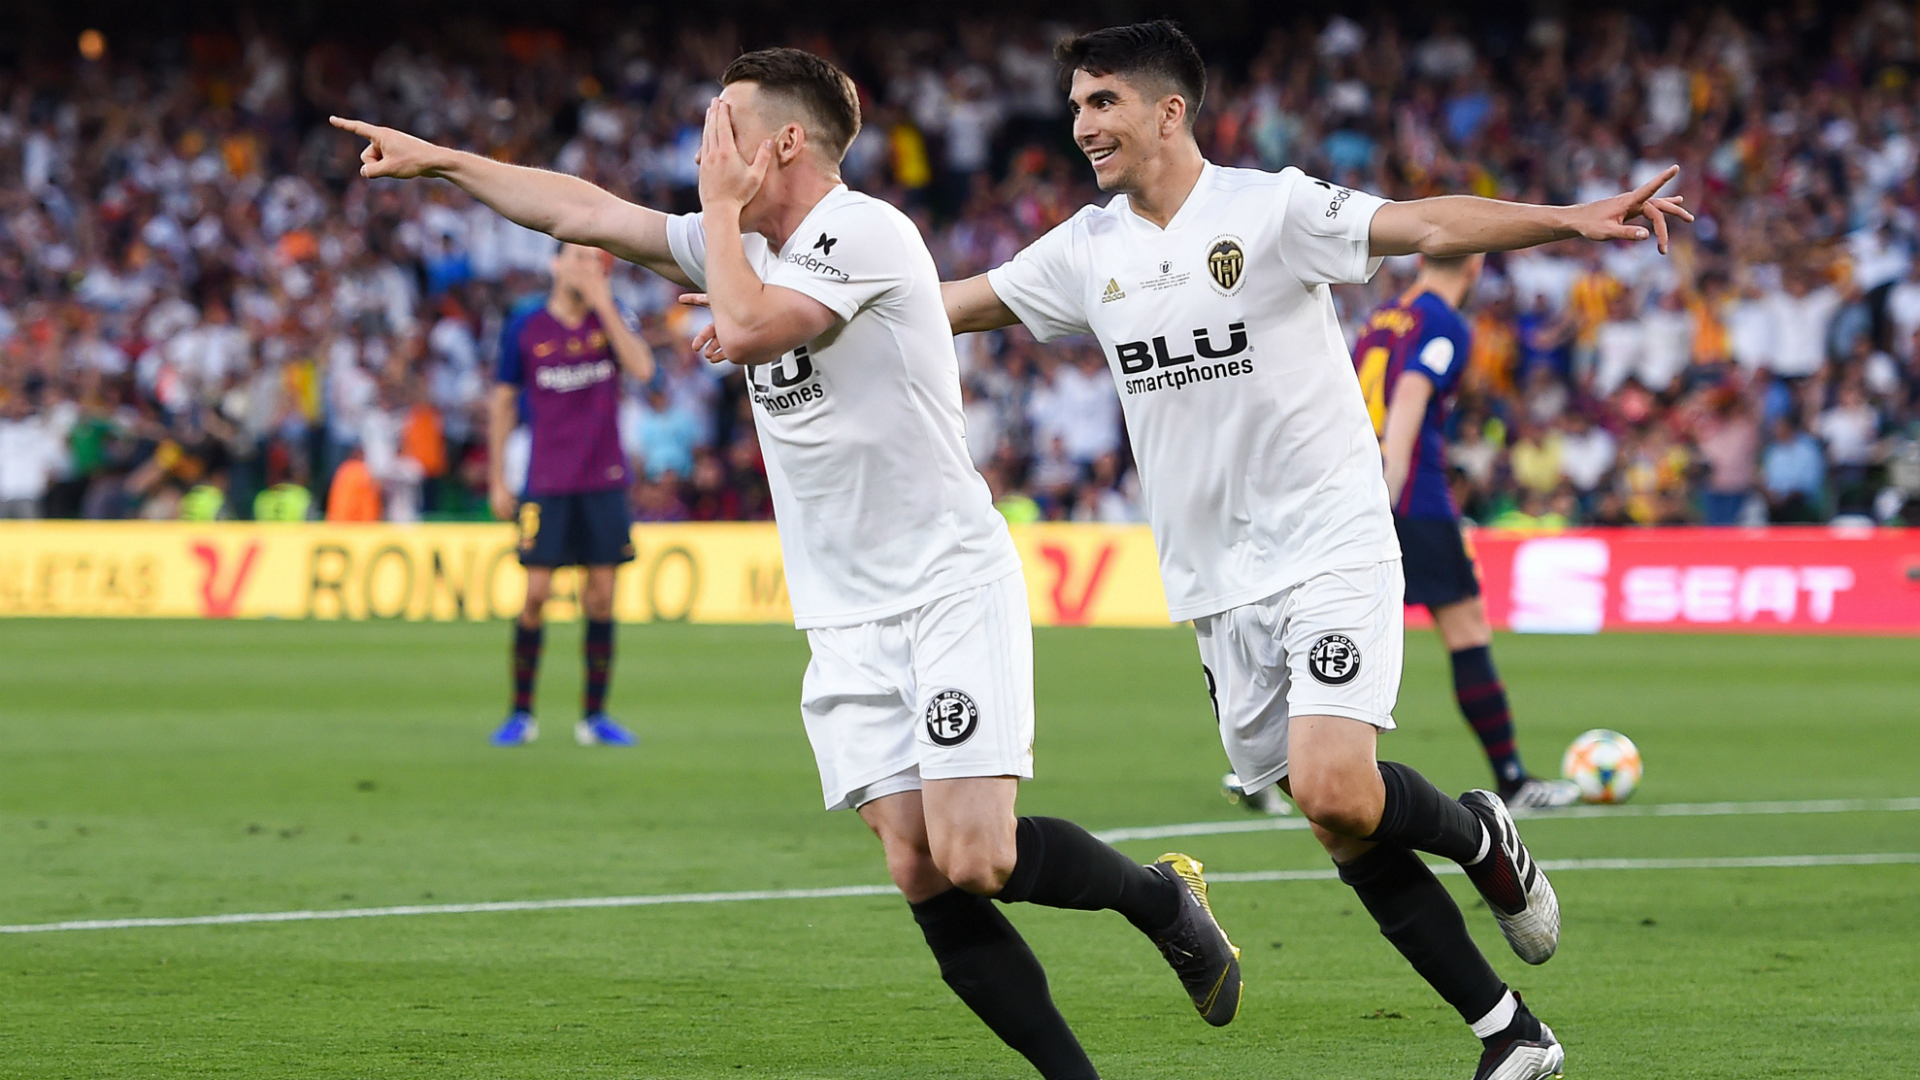 Leganes lived to fight another day in La Liga, riding their luck in a 1-0 win at home to Valencia on Sunday. This was after they played most of the second half with 10 men and saw their opponents squander a penalty kick. Midfielder Ruben Perez put the Madrid minnows in front in the 18th […]